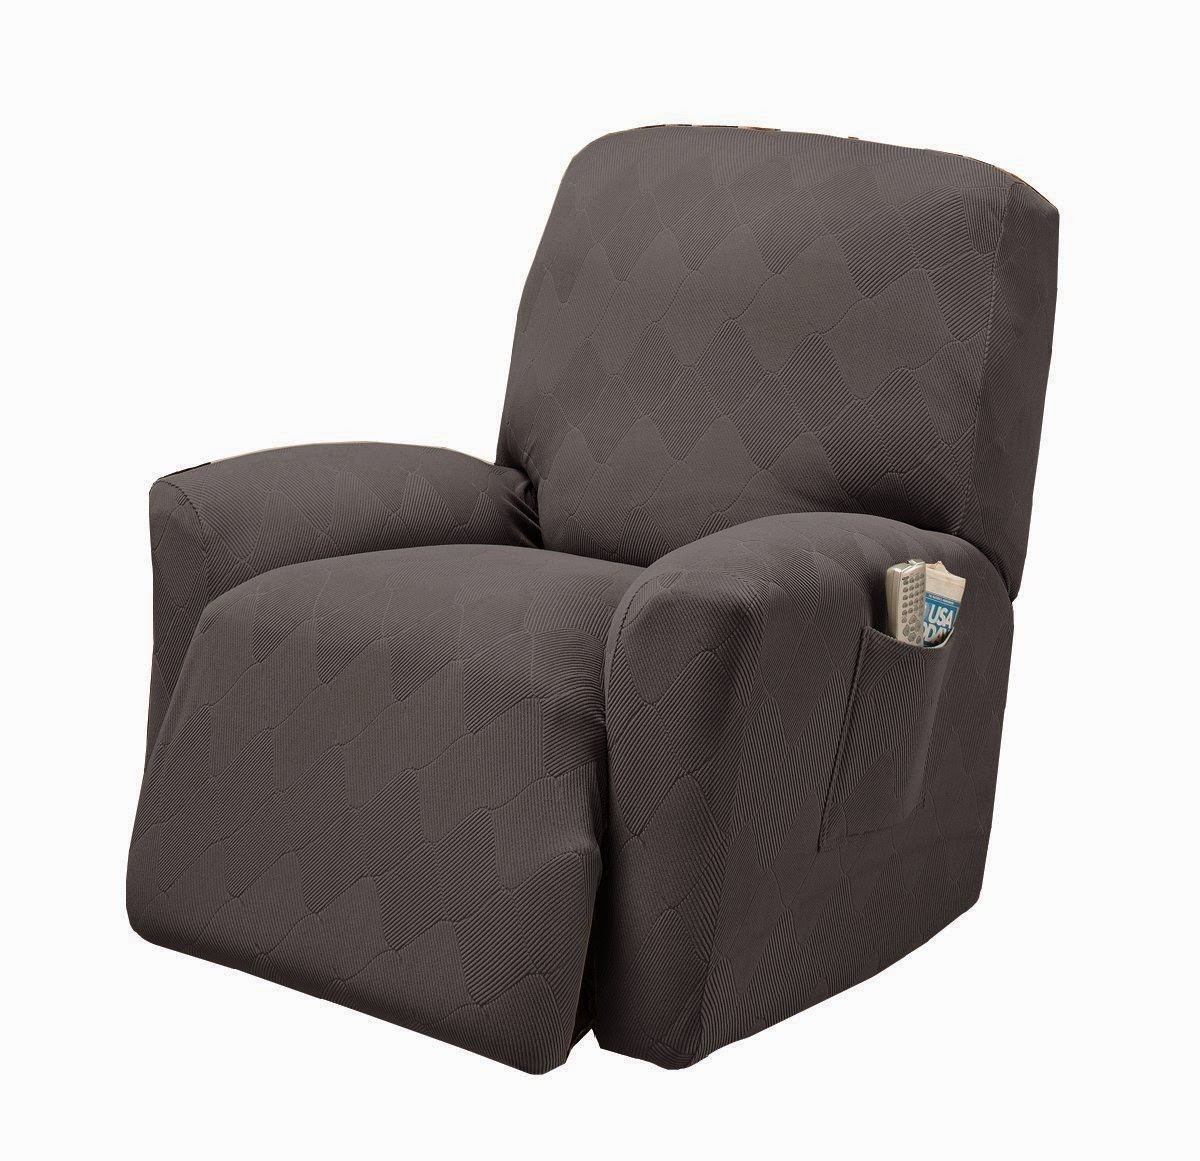 The Best Reclining Sofa Reviews Reclining Sofa Slipcovers